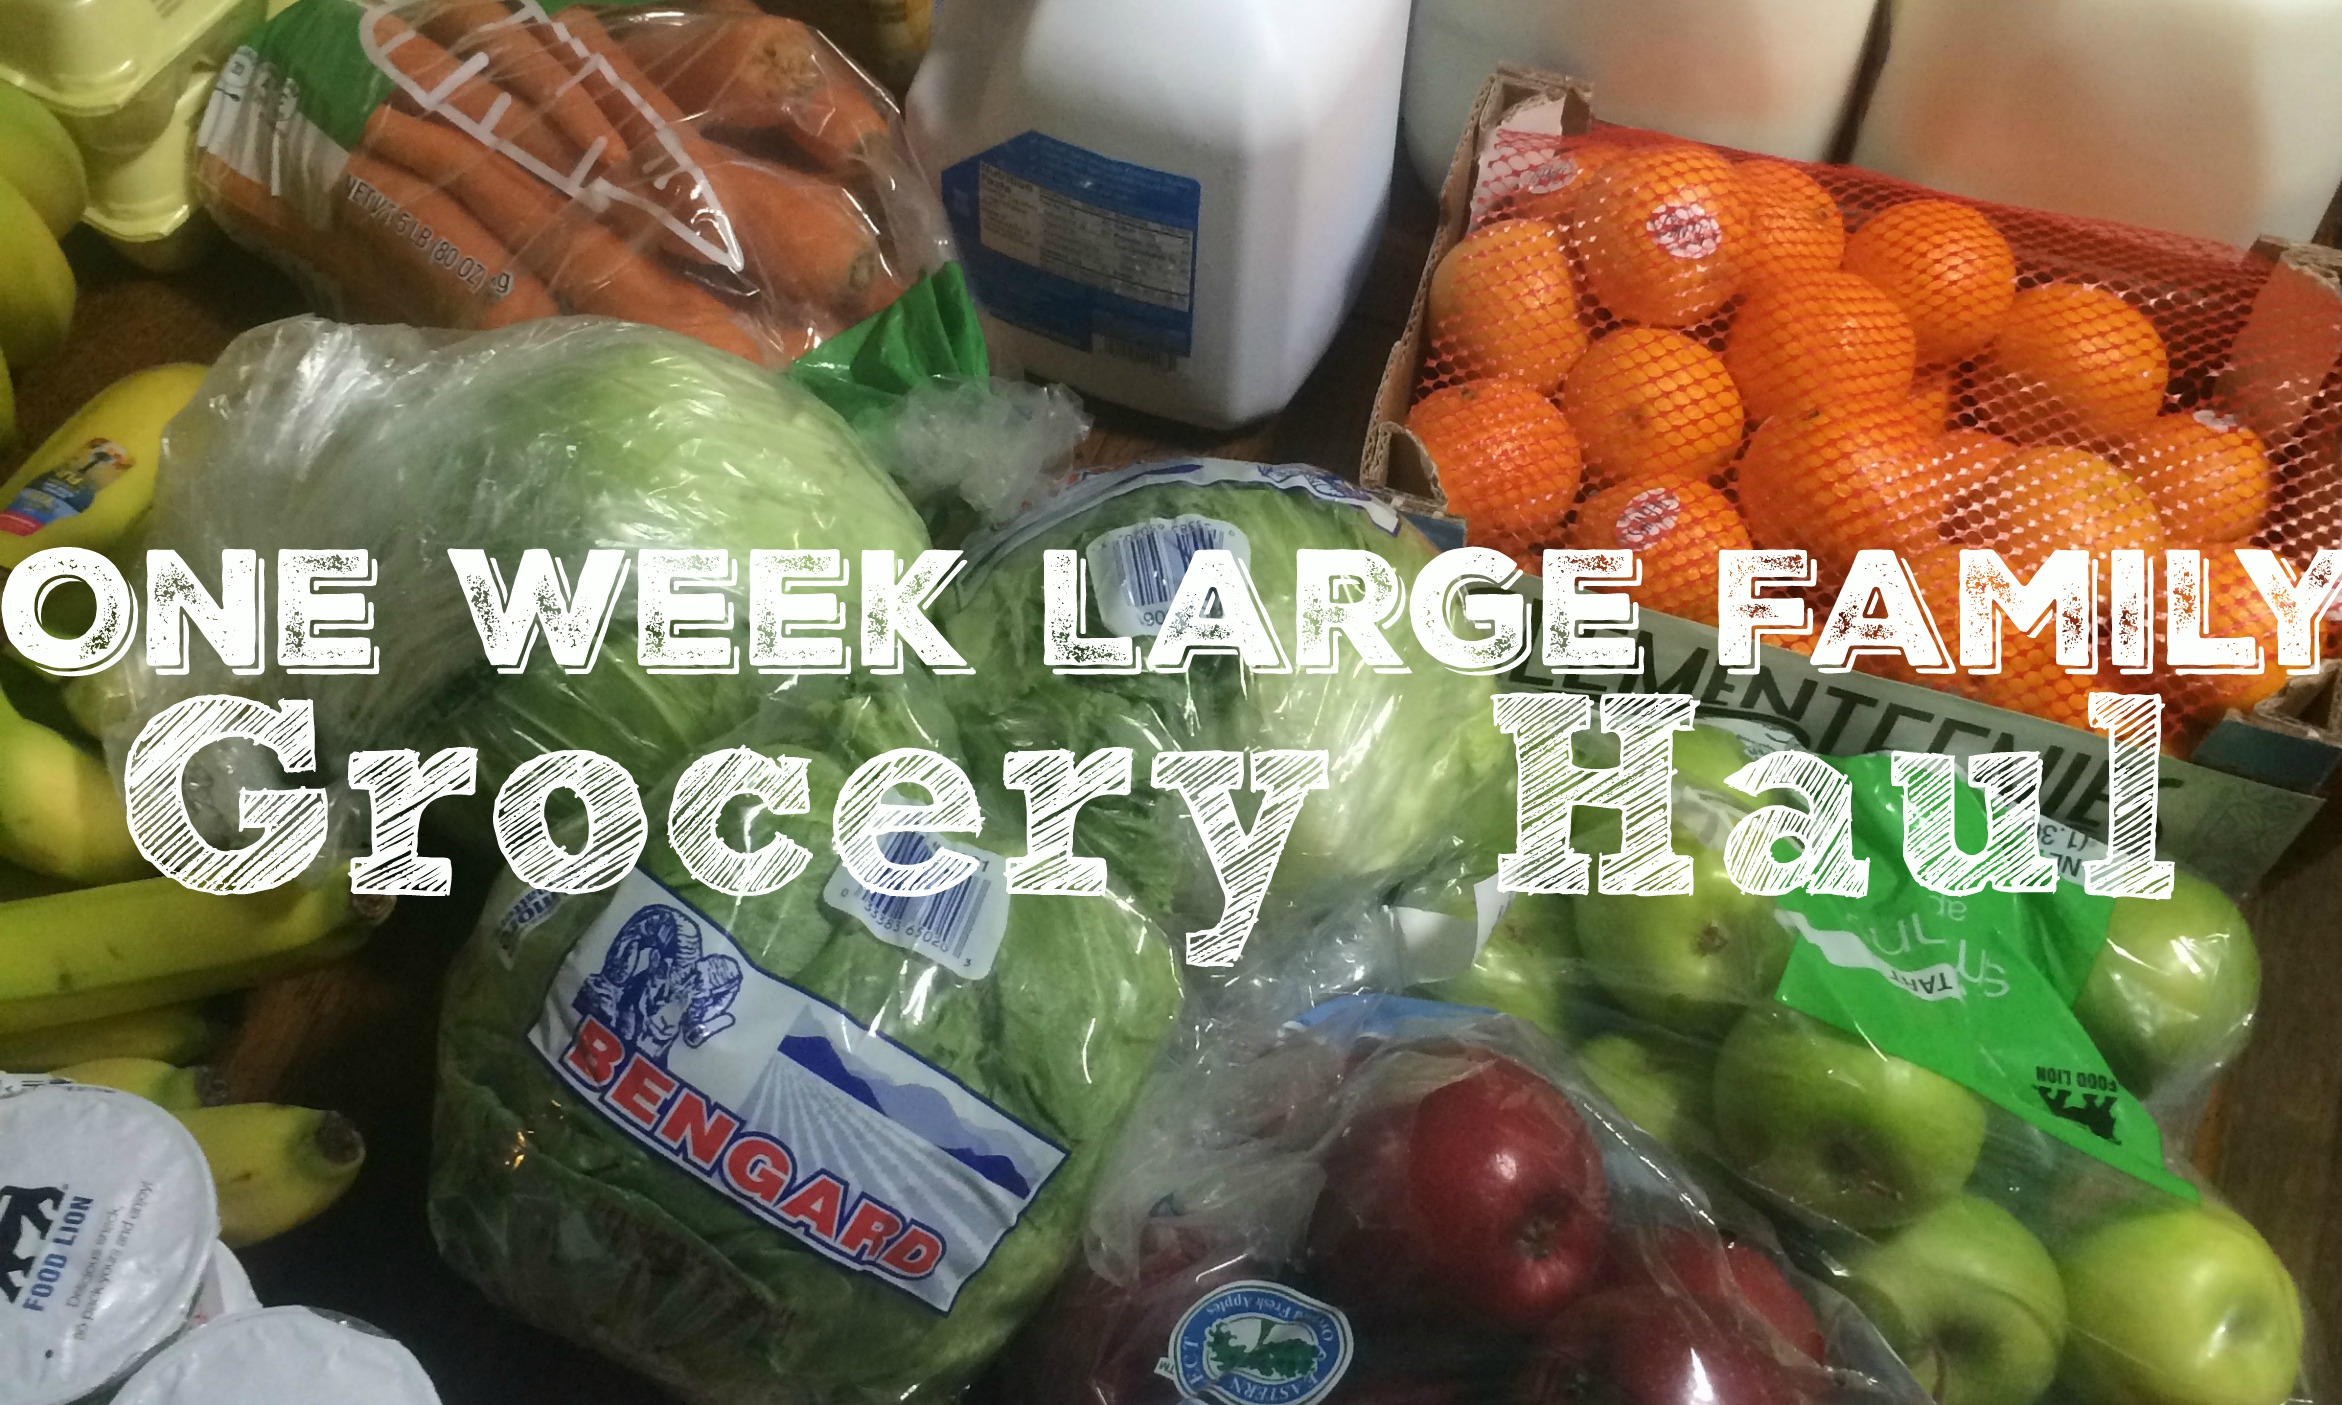 One Week Large Family Grocery Haul